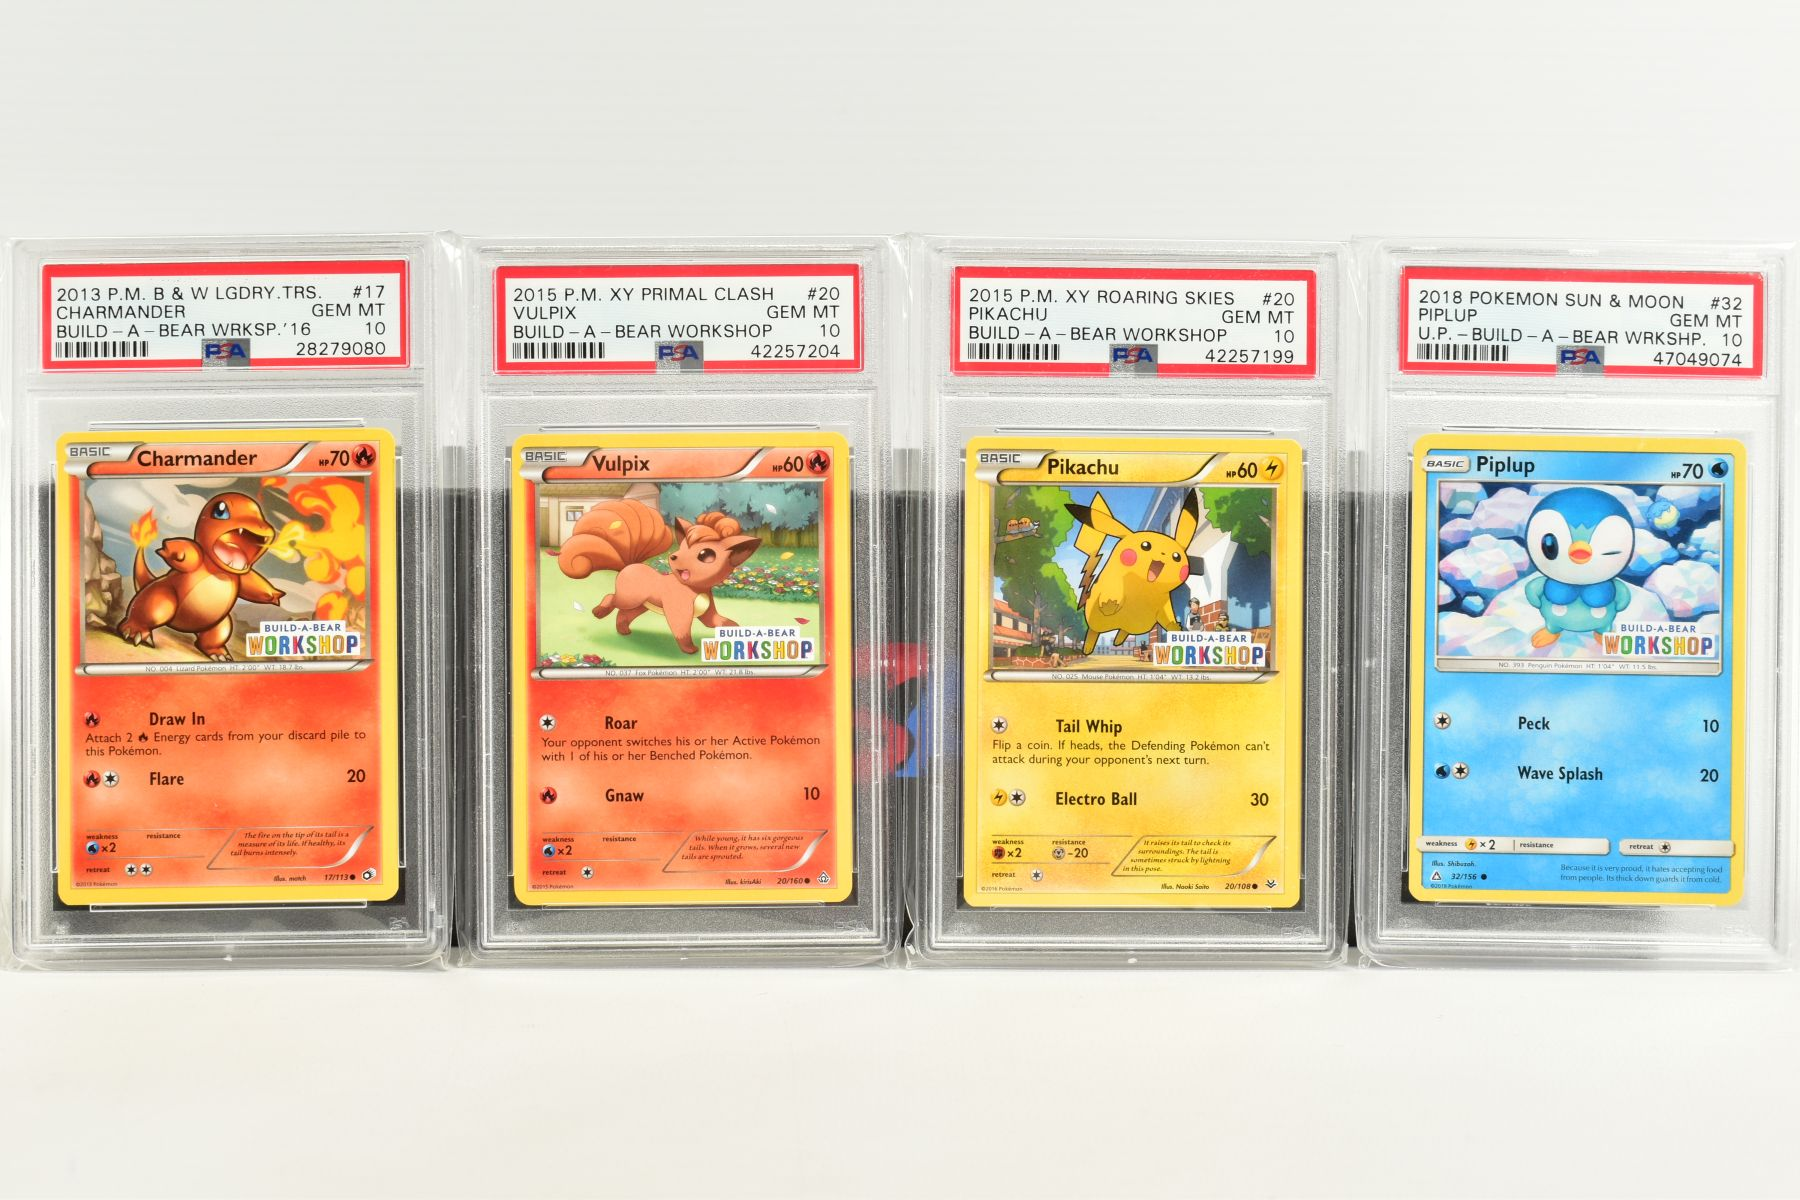 A QUANTITY OF PSA GRADED POKEMON CARDS, assorted cards from the Southern Islands Promos, Build-A- - Image 5 of 12